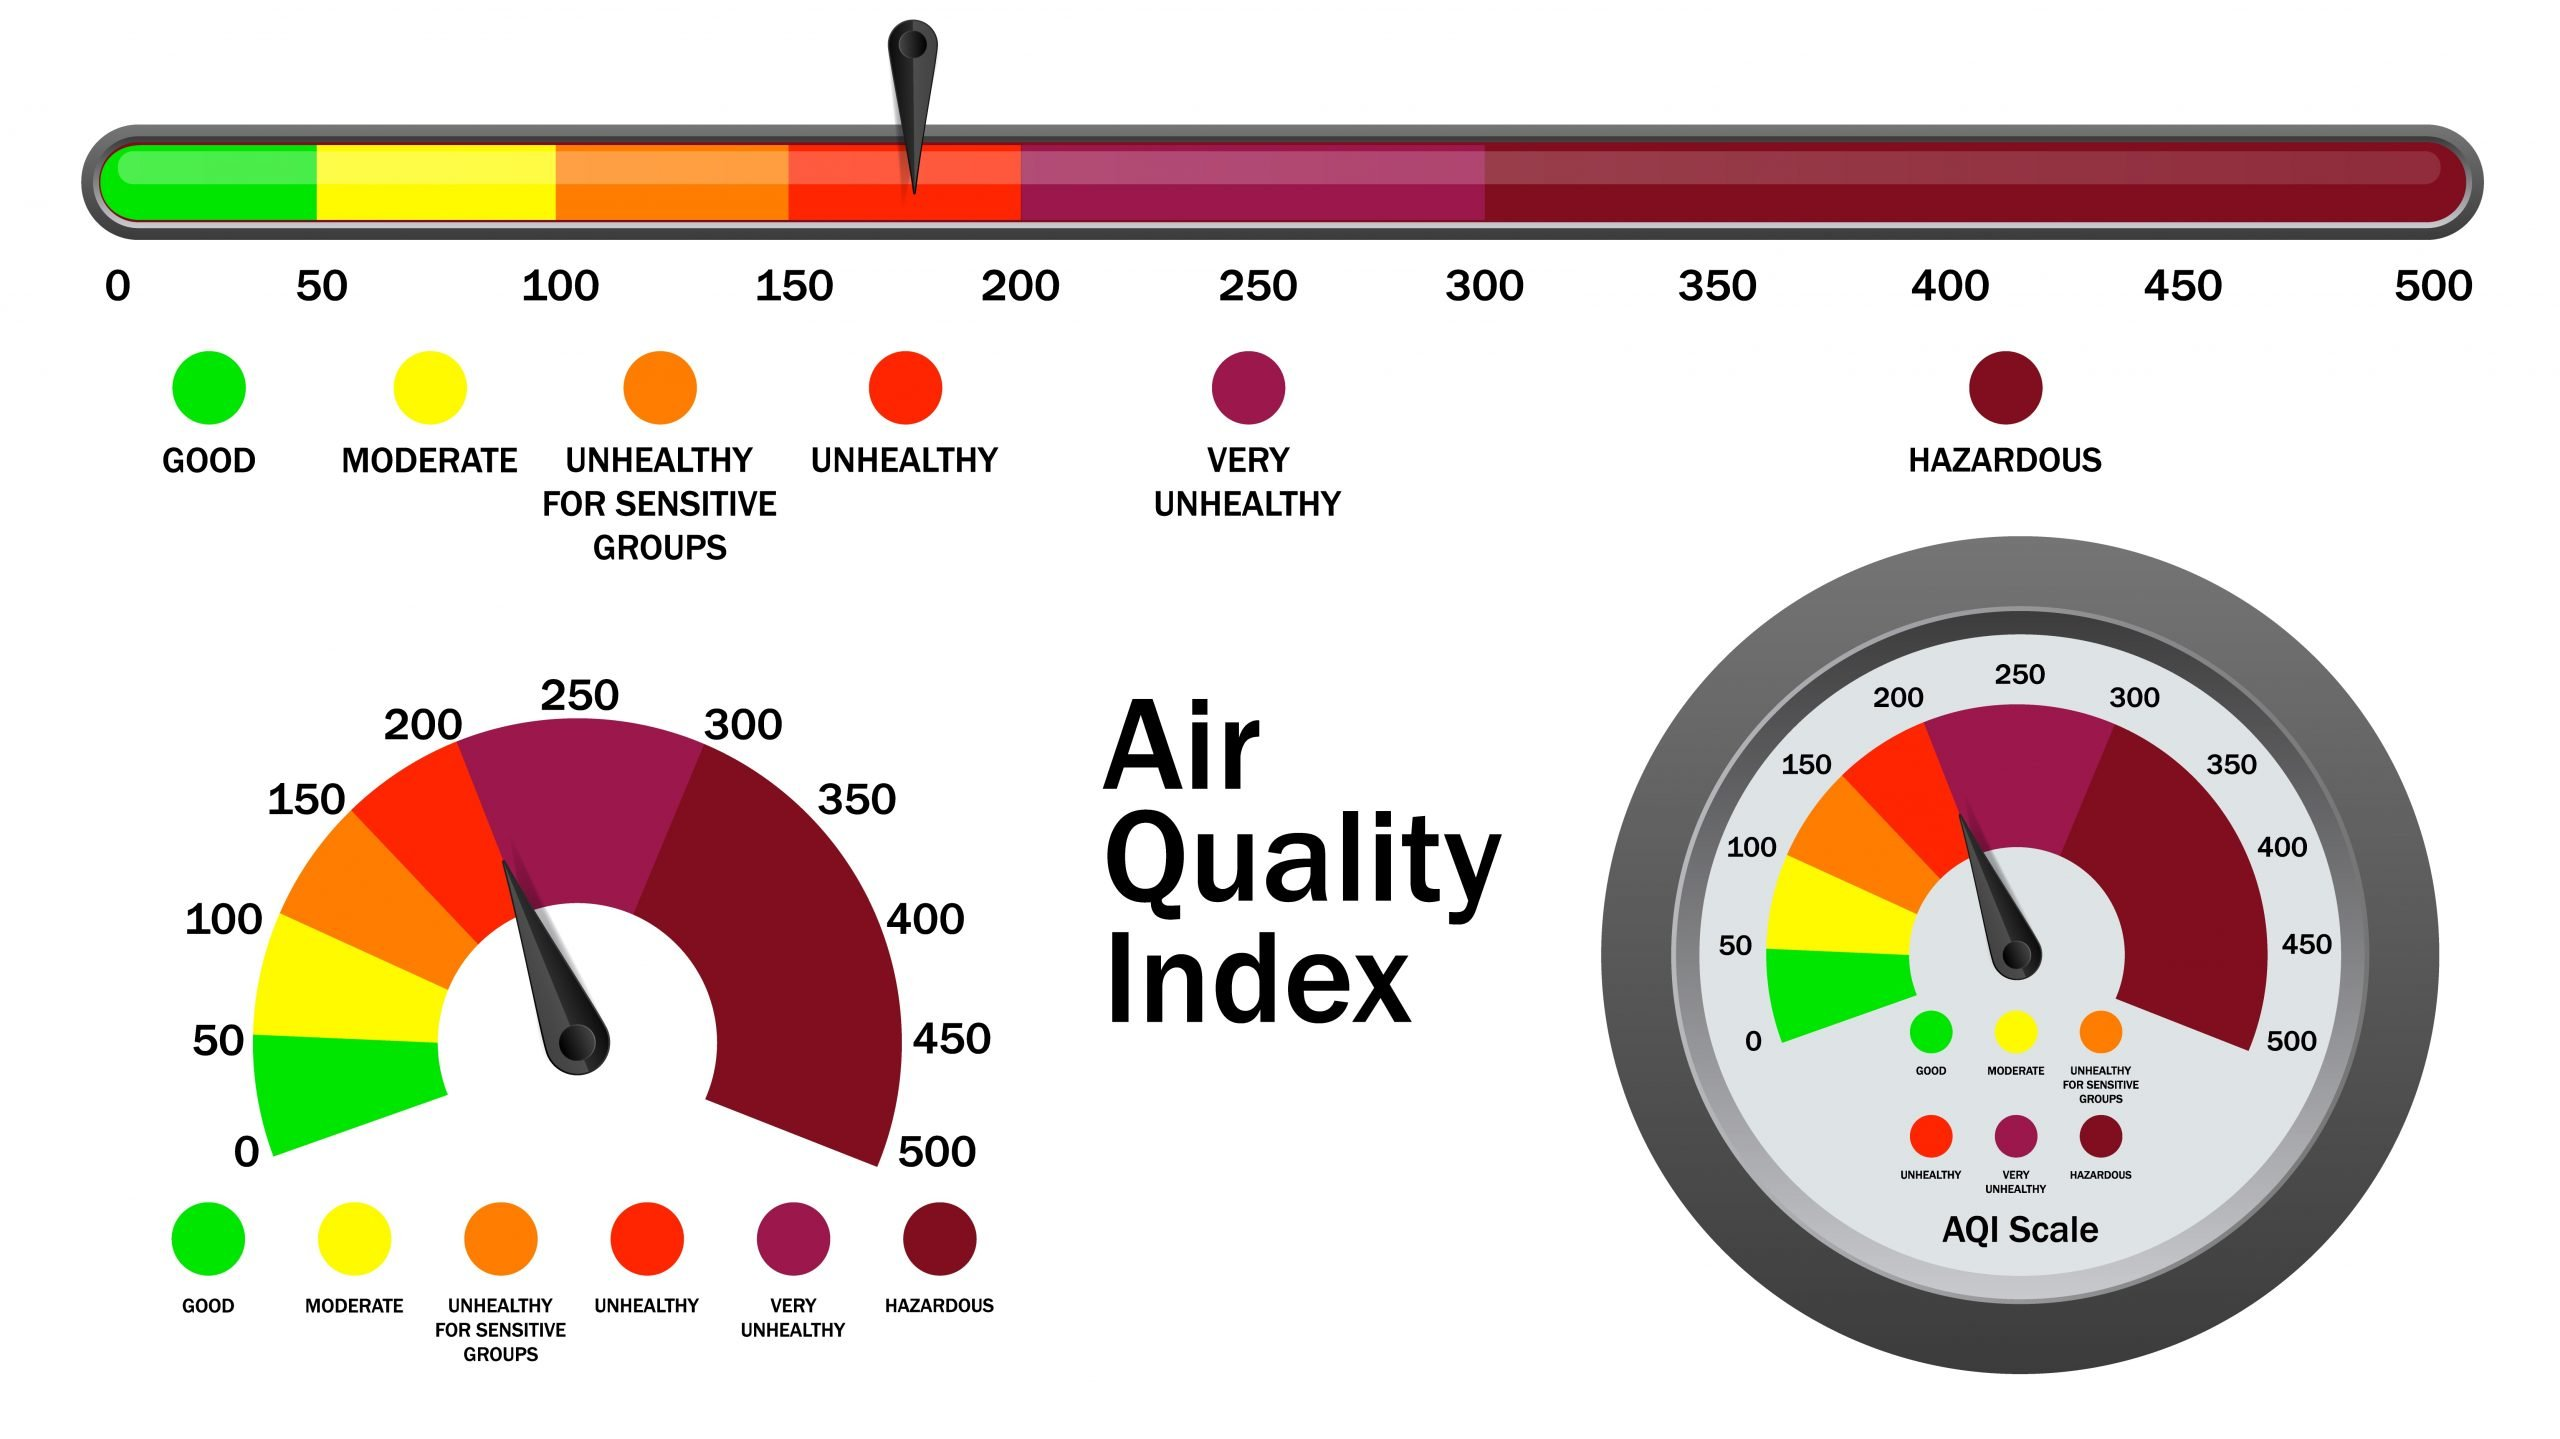 air quality index showing numbers coreelating to healthy and unhealthy air quality. Zero being good air quality and 300 plus being hazardous